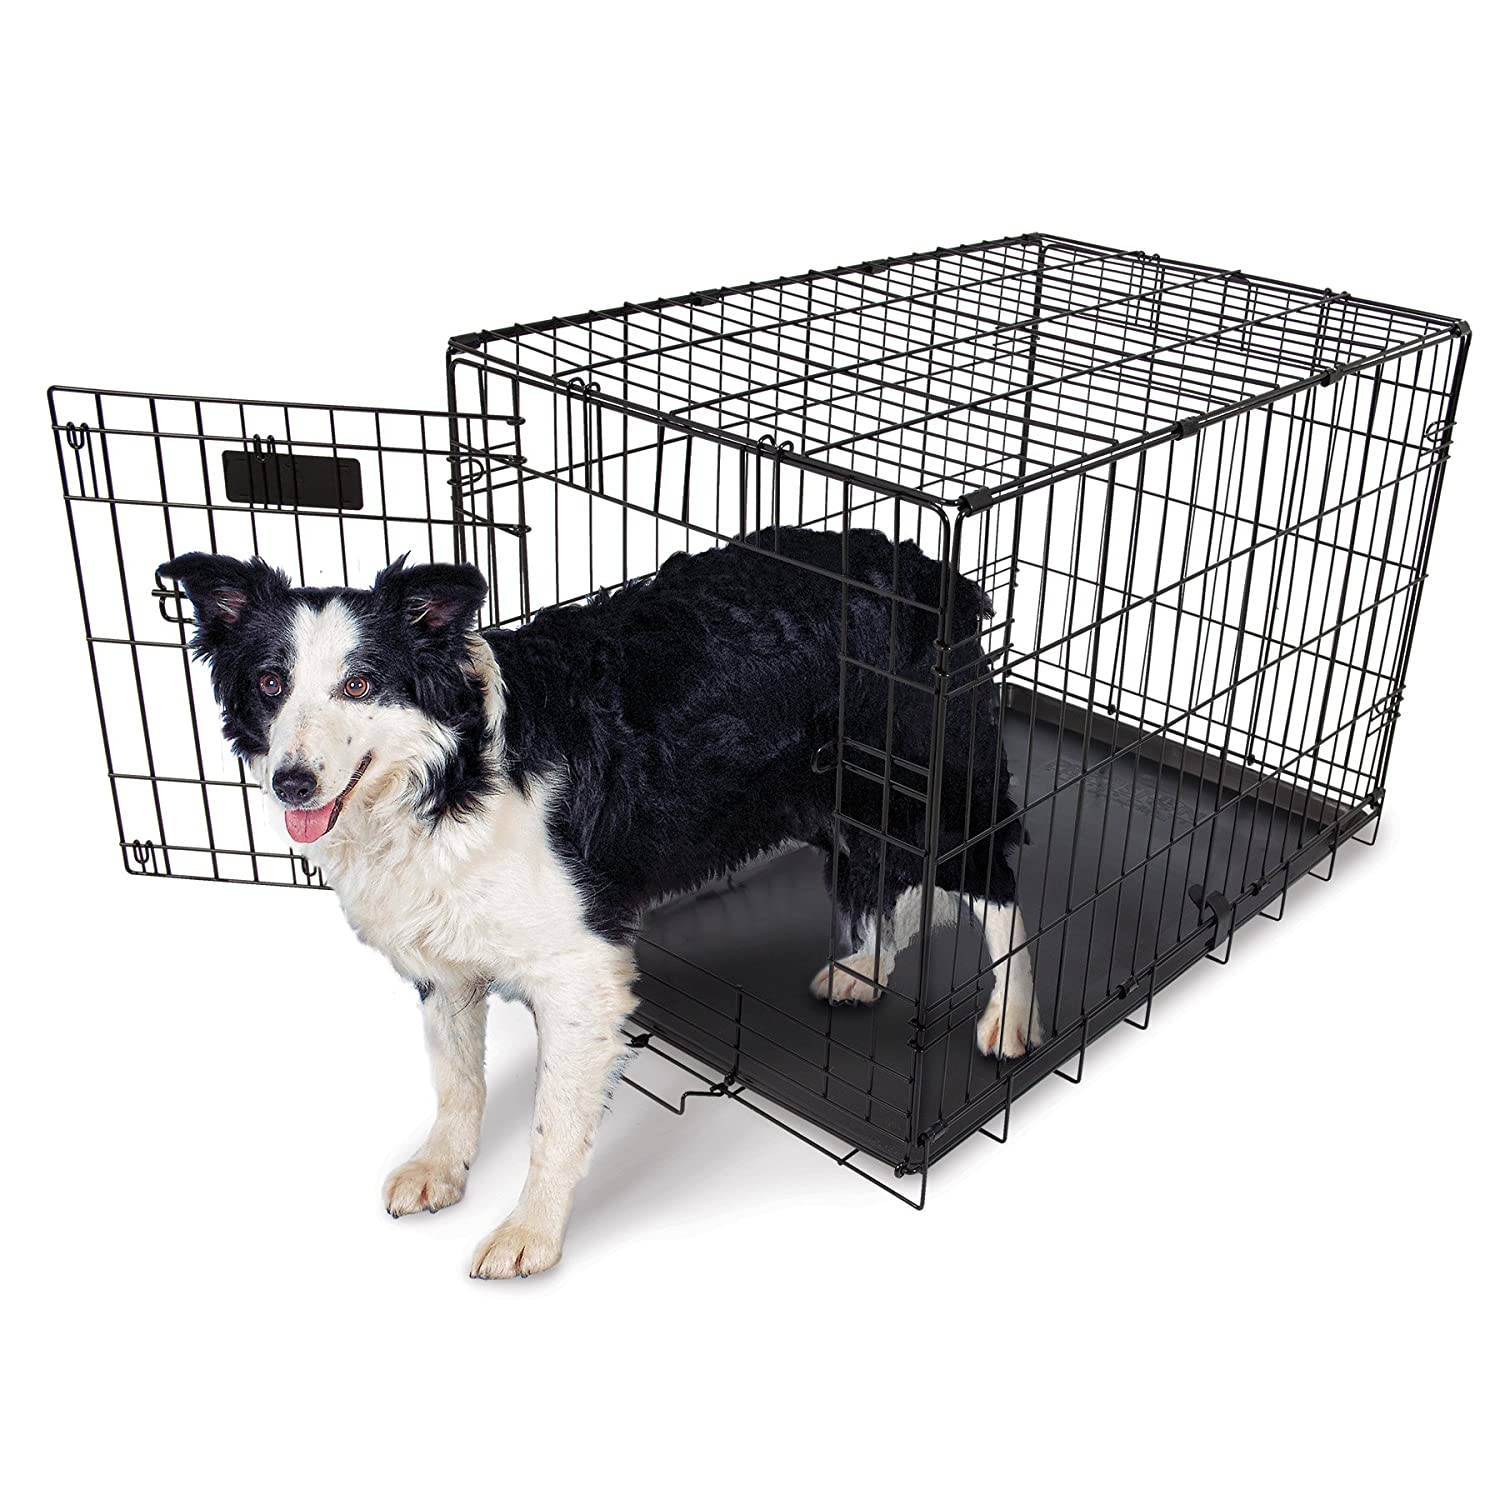 30\ Aspen Pet 21943 Wire Home Training Dog Kennel, 30  W x 19.5  D x 22.5  H